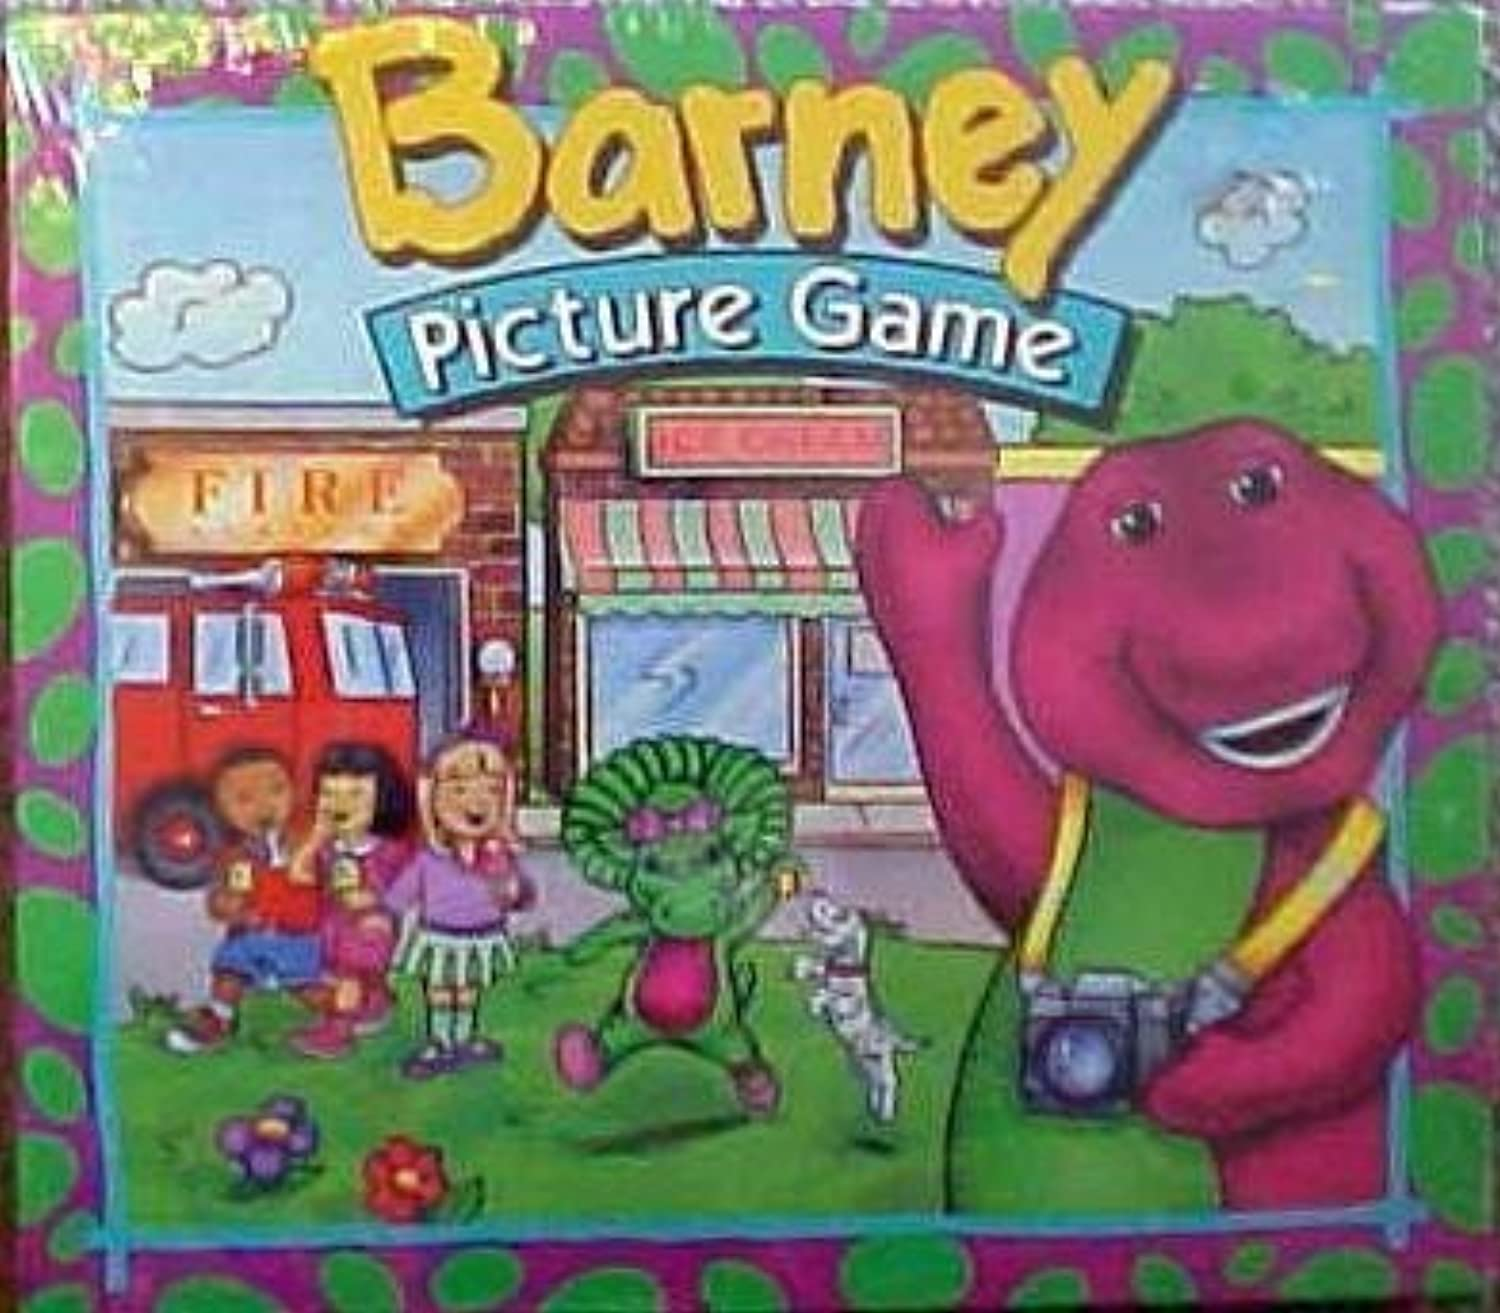 Barney Picture Game by Parker Brothers